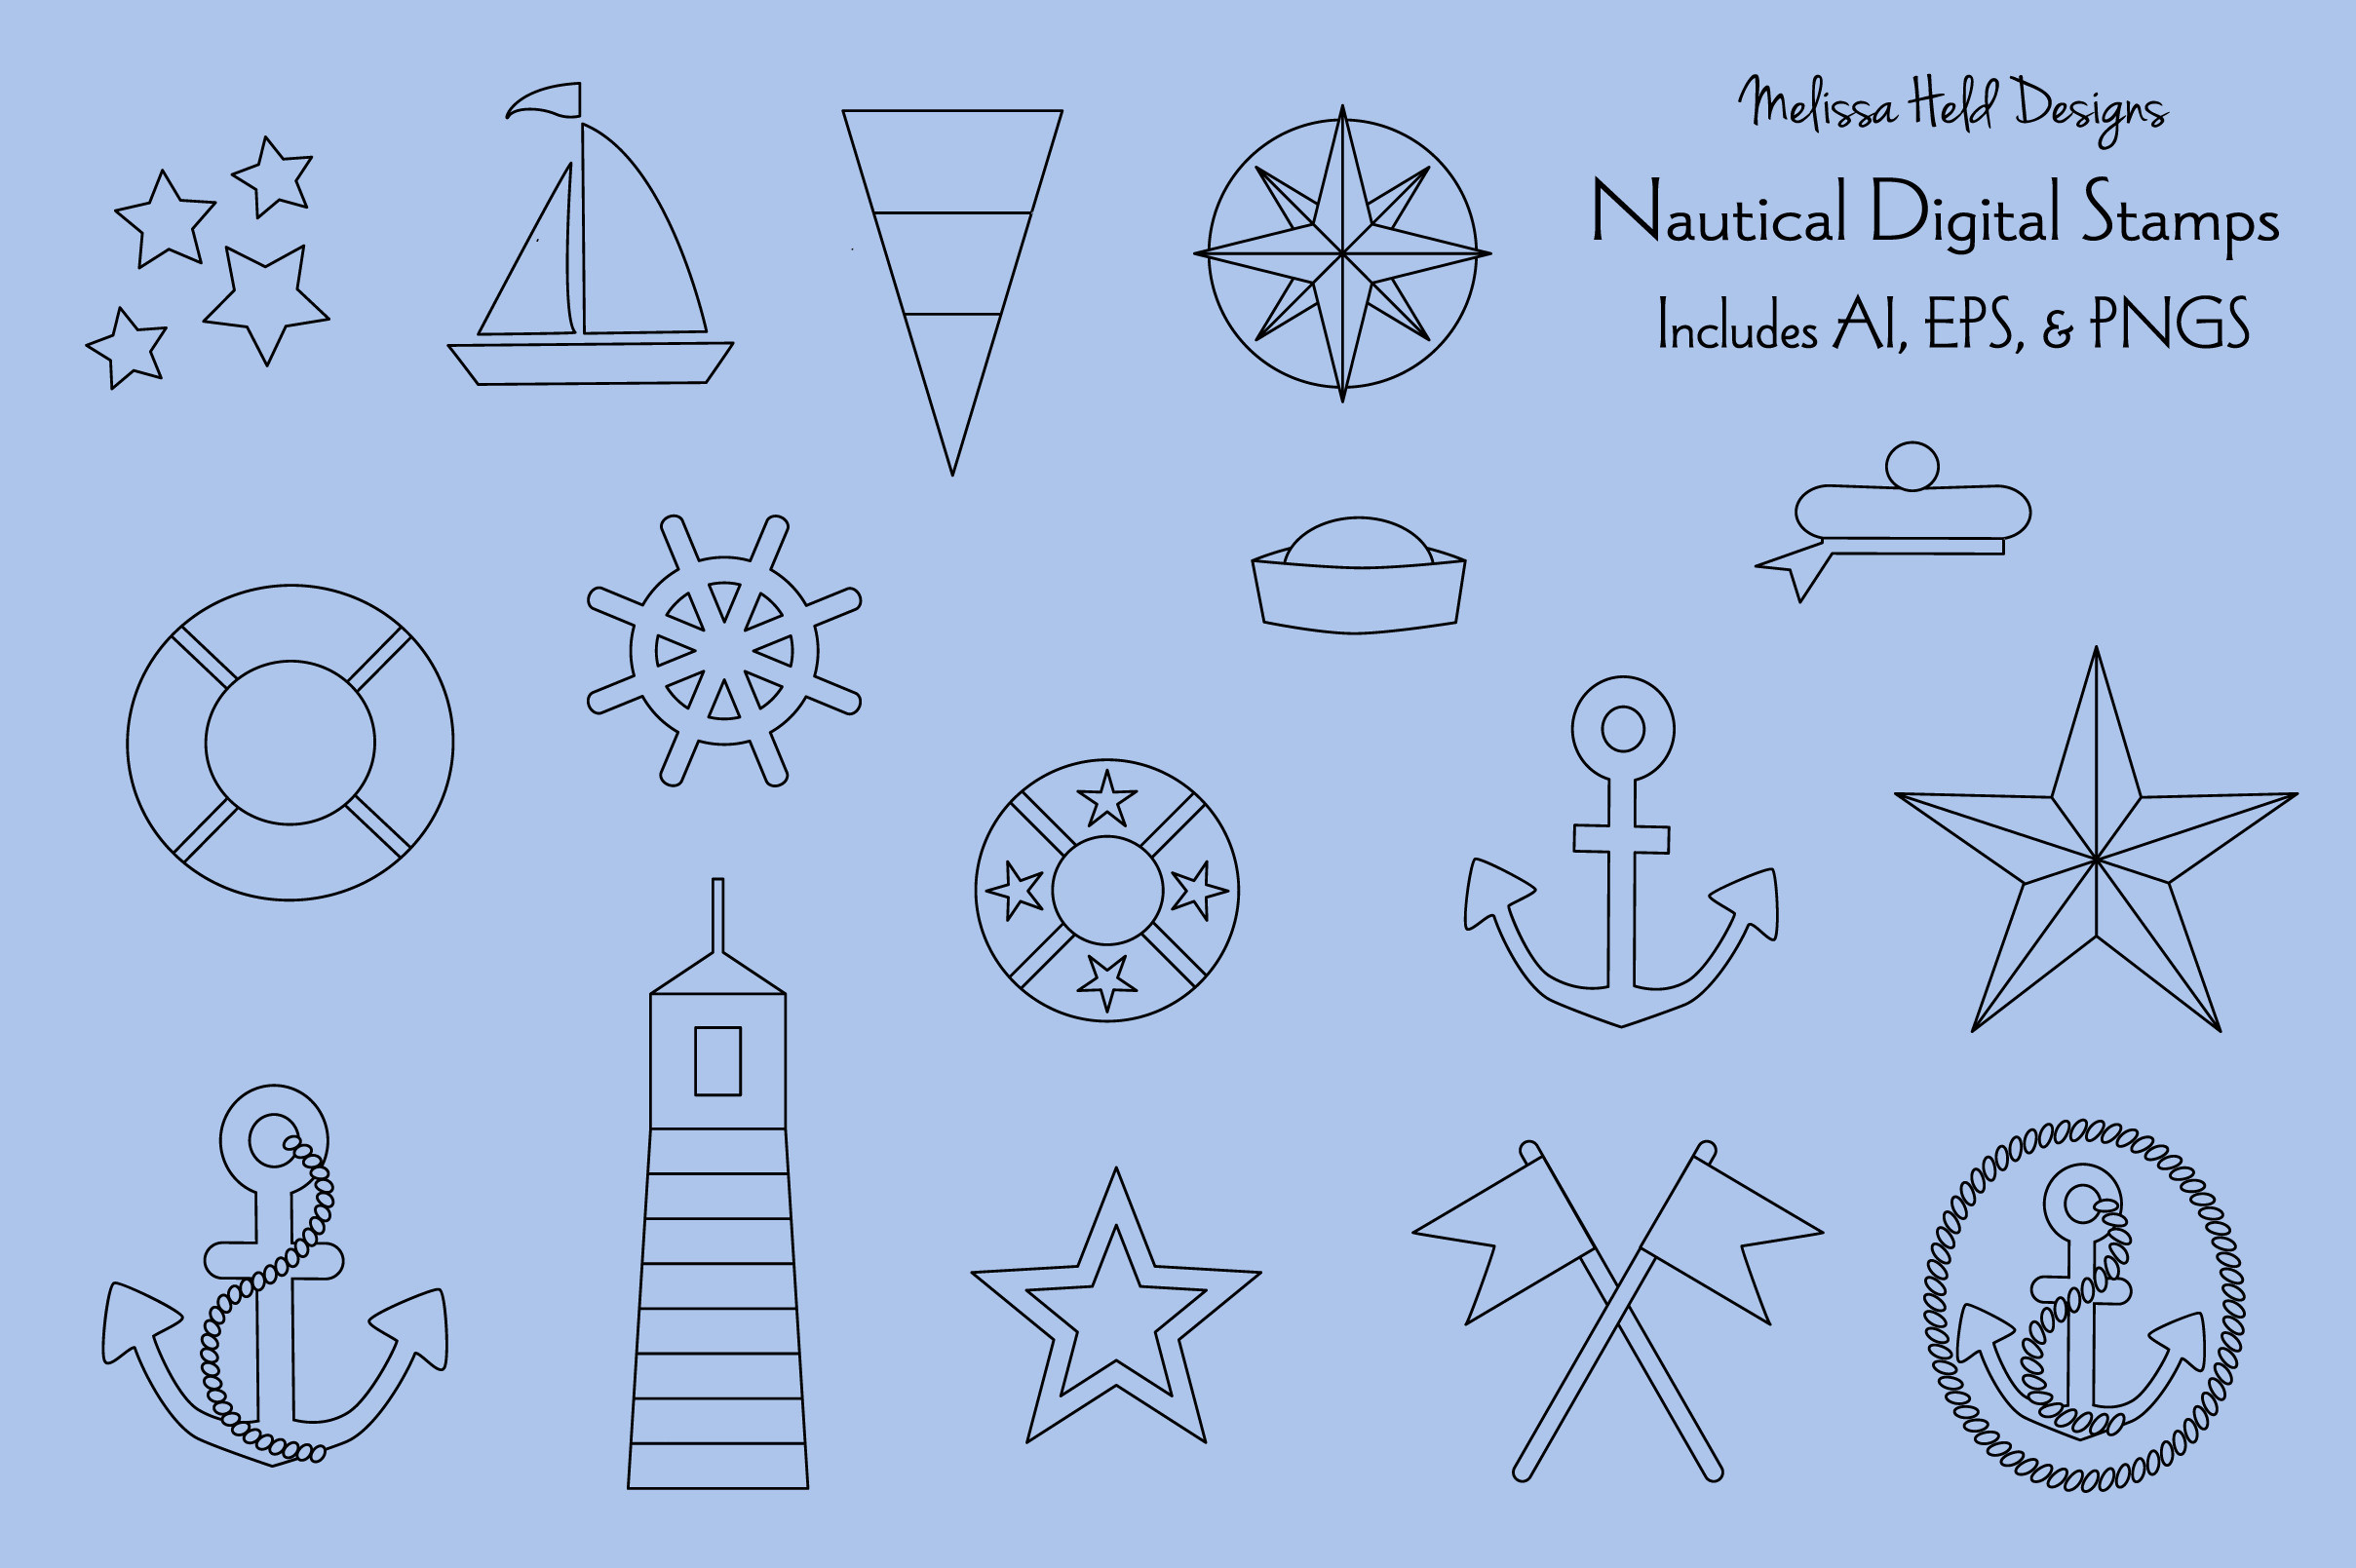 Download Free Nautical Digital Stamps Clipart Graphic By Melissa Held Designs for Cricut Explore, Silhouette and other cutting machines.